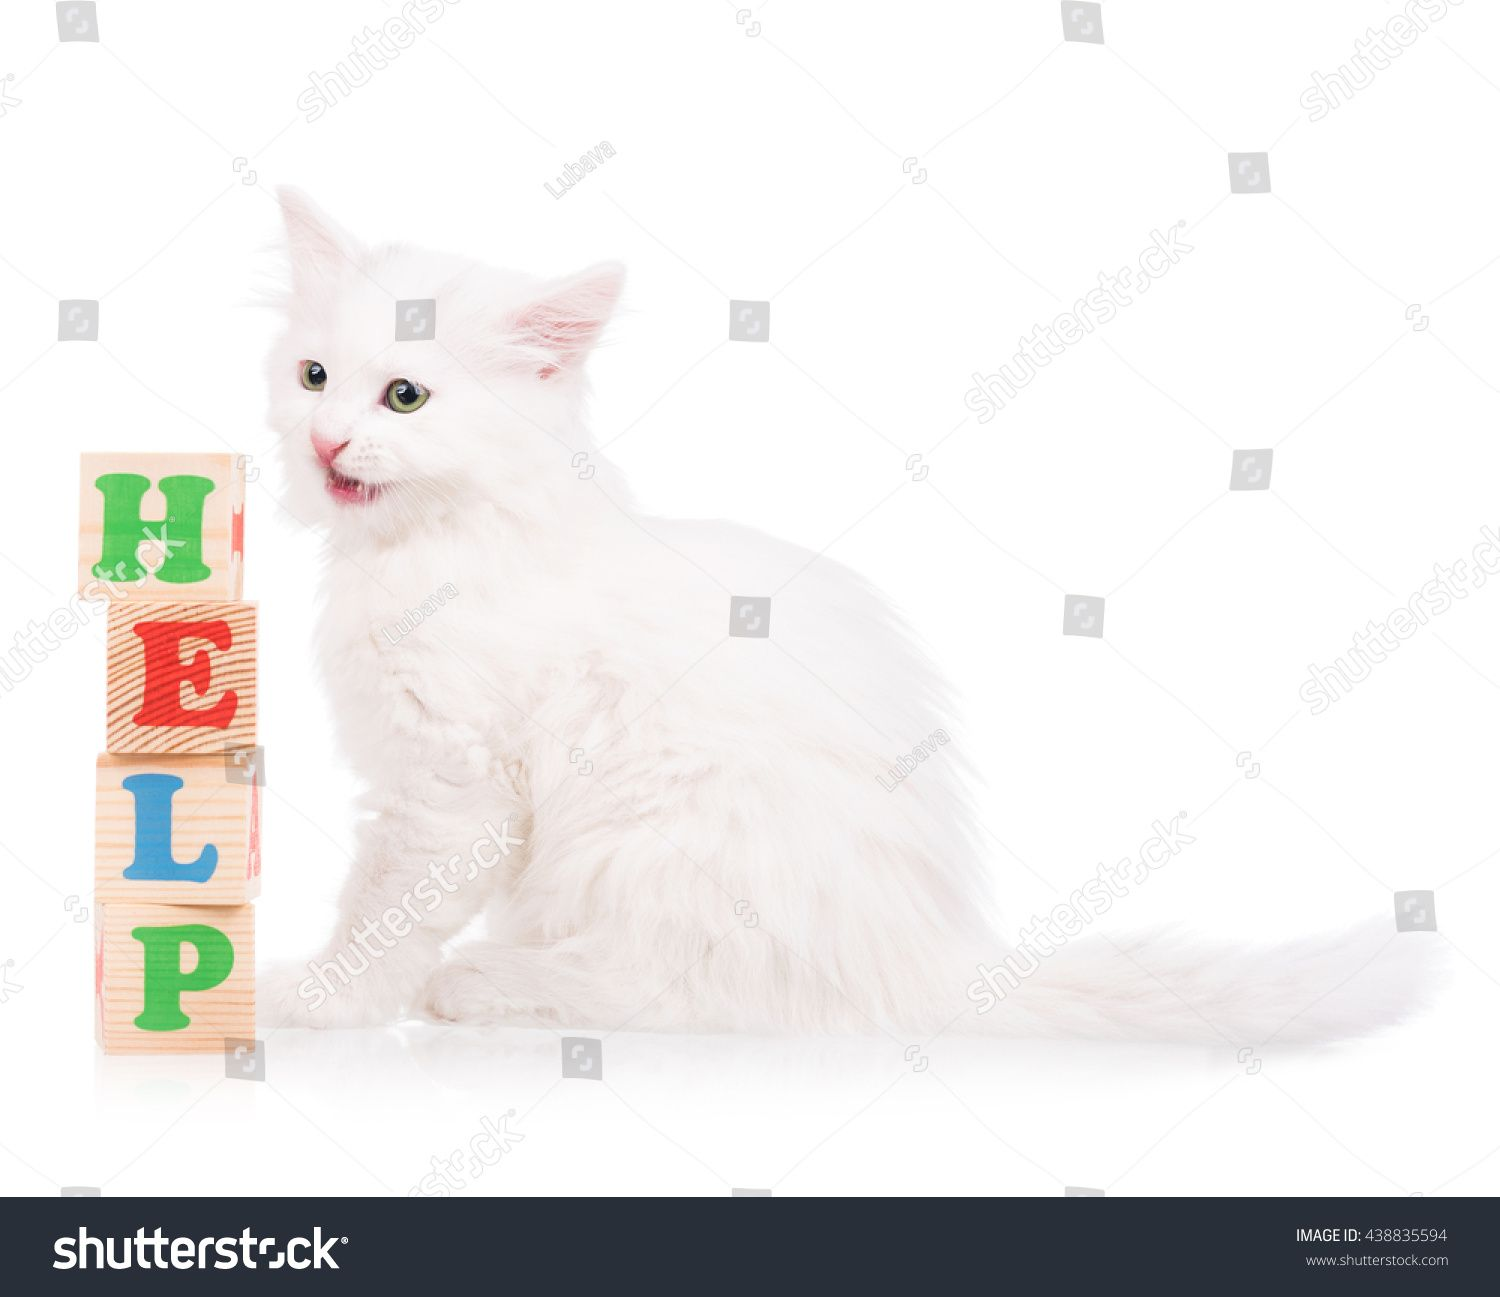 Cute Fluffy White Kitten With Playing Cubes Isolated Over White Background Ad Sponsored White Kitten Cute Fluffy In 2020 White Kittens Kittens Cutest Kitten